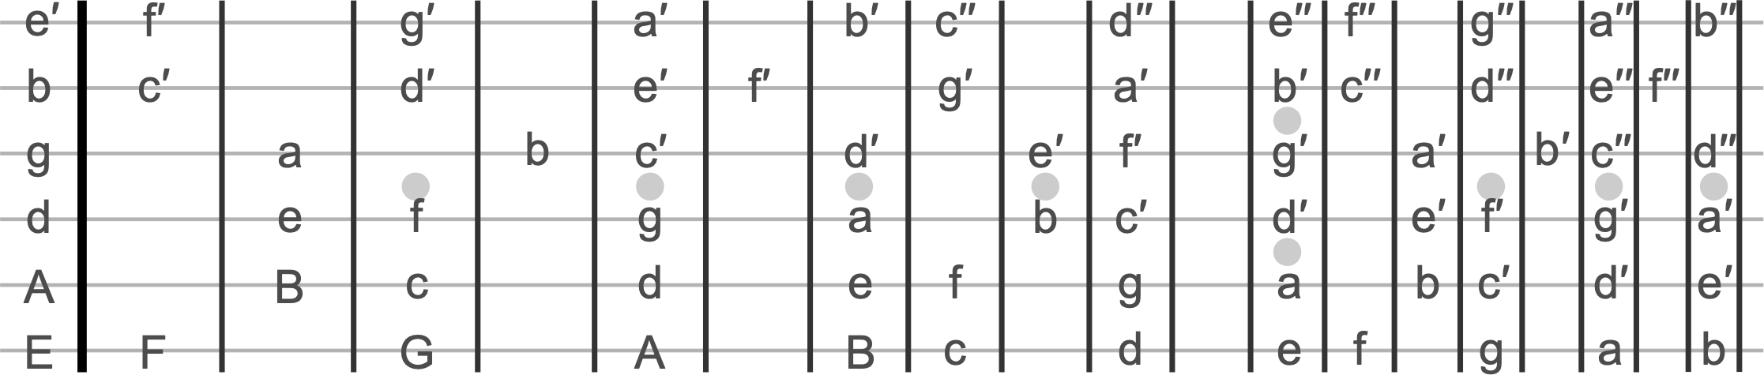 Fretboard with note names